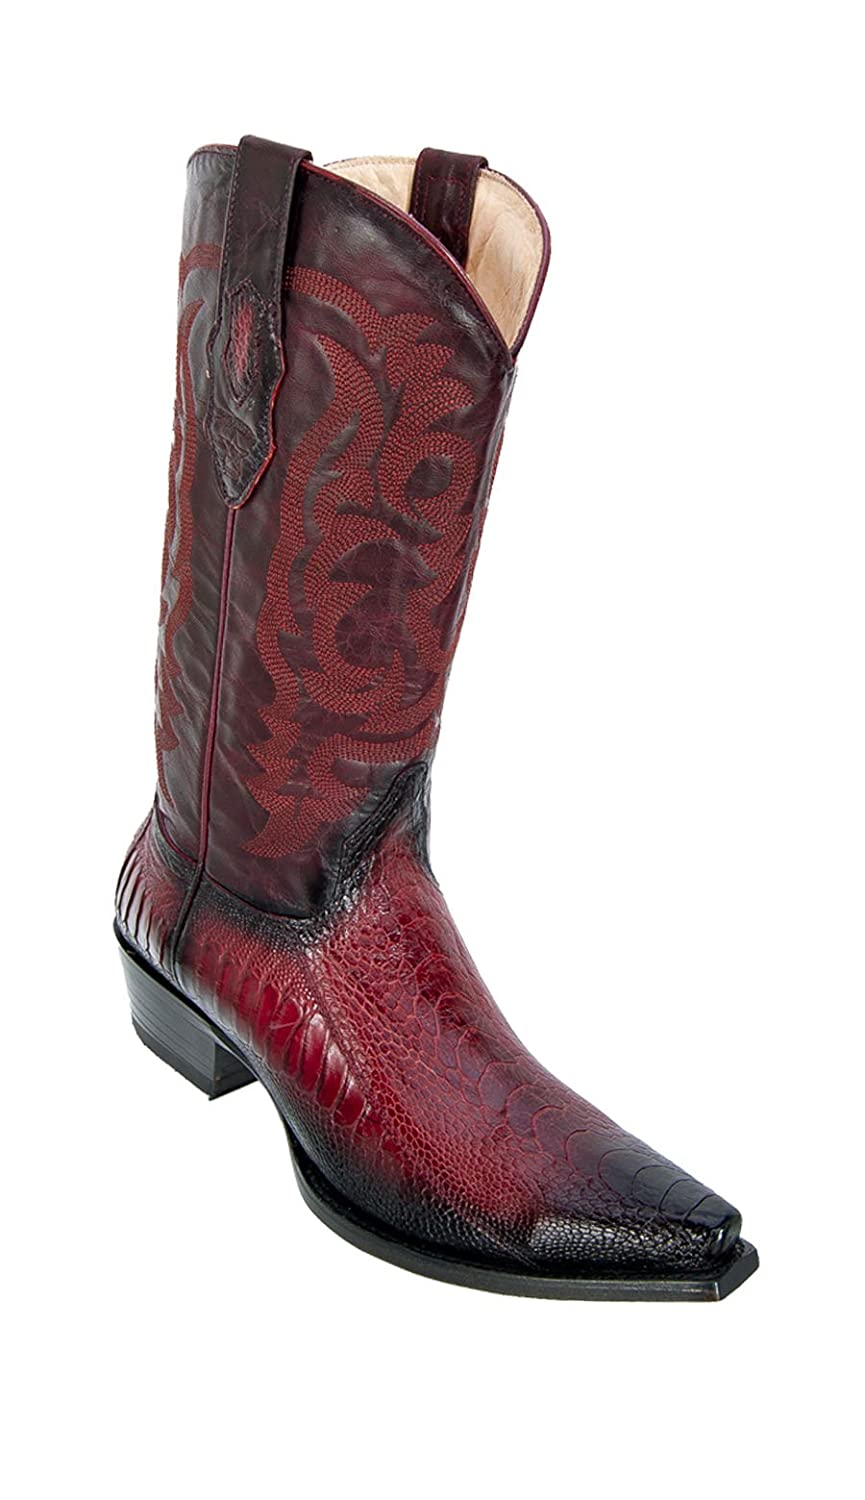 401cac07eba Men's Sinp Toe Genuine Leather Ostrich Western Boots - Ostrich Leg Exotic  Skin Boots